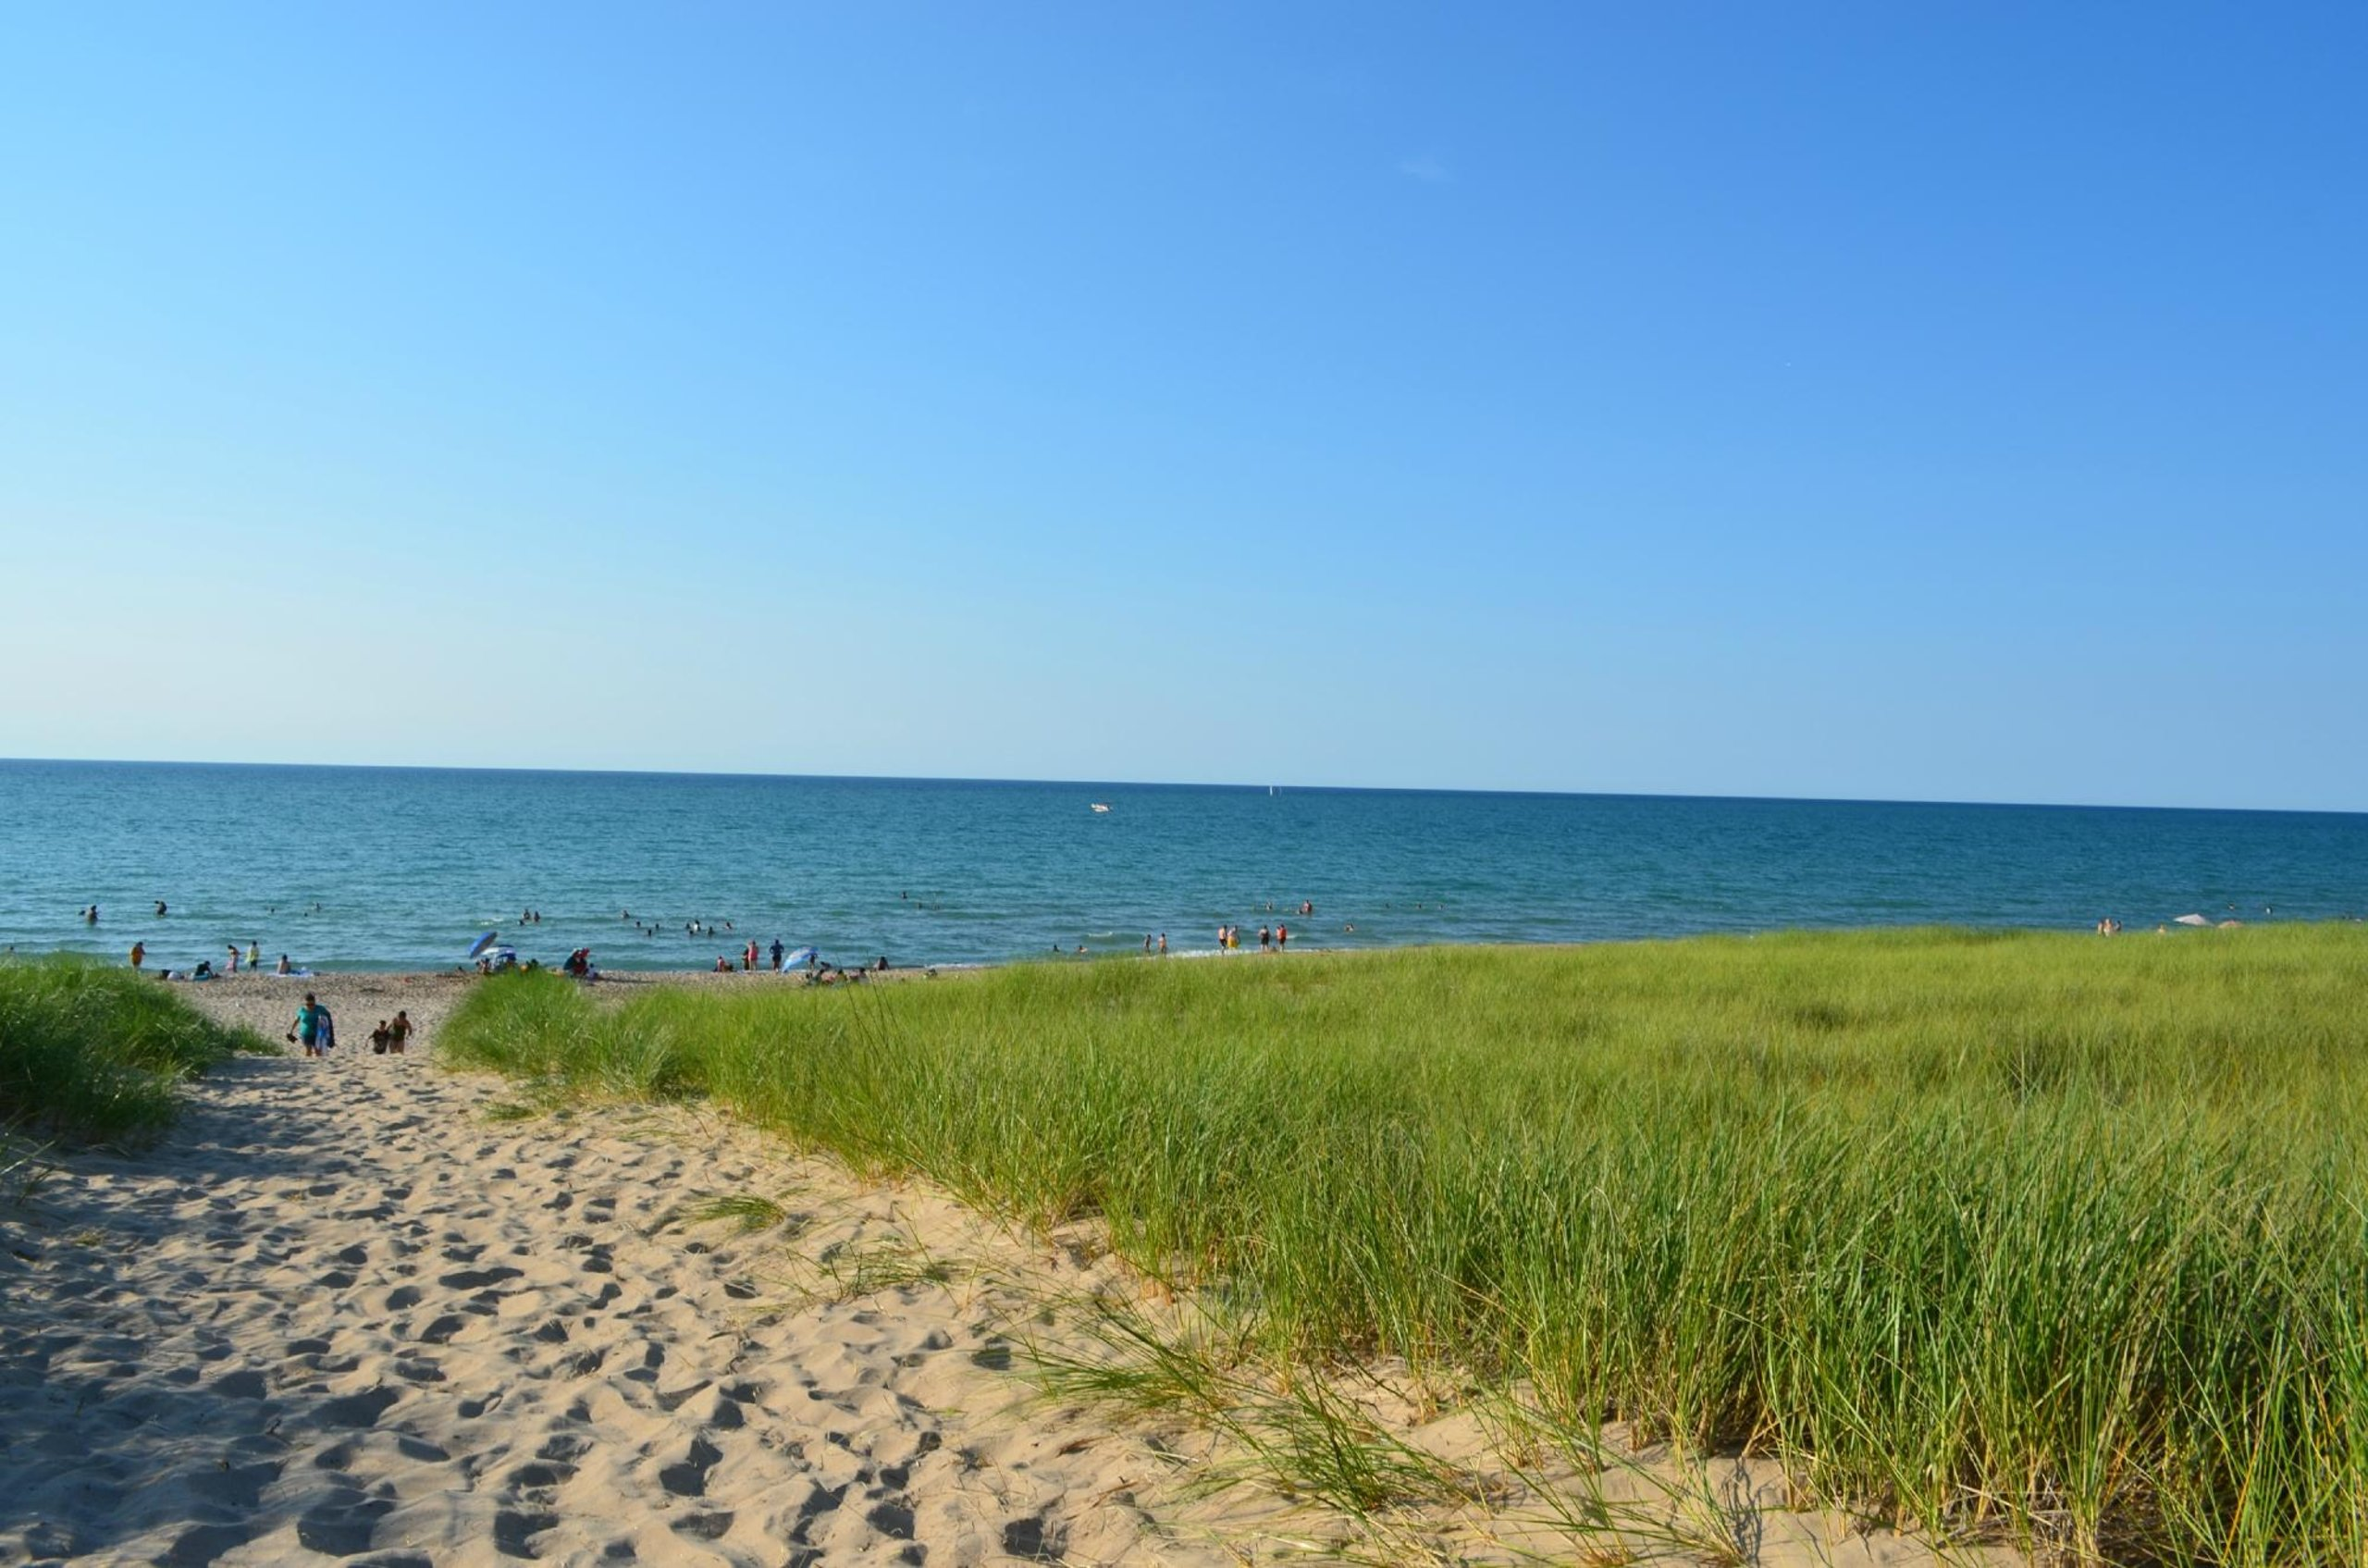 michigan city 2020 best of michigan city in tourism tripadvisor michigan city 2020 best of michigan